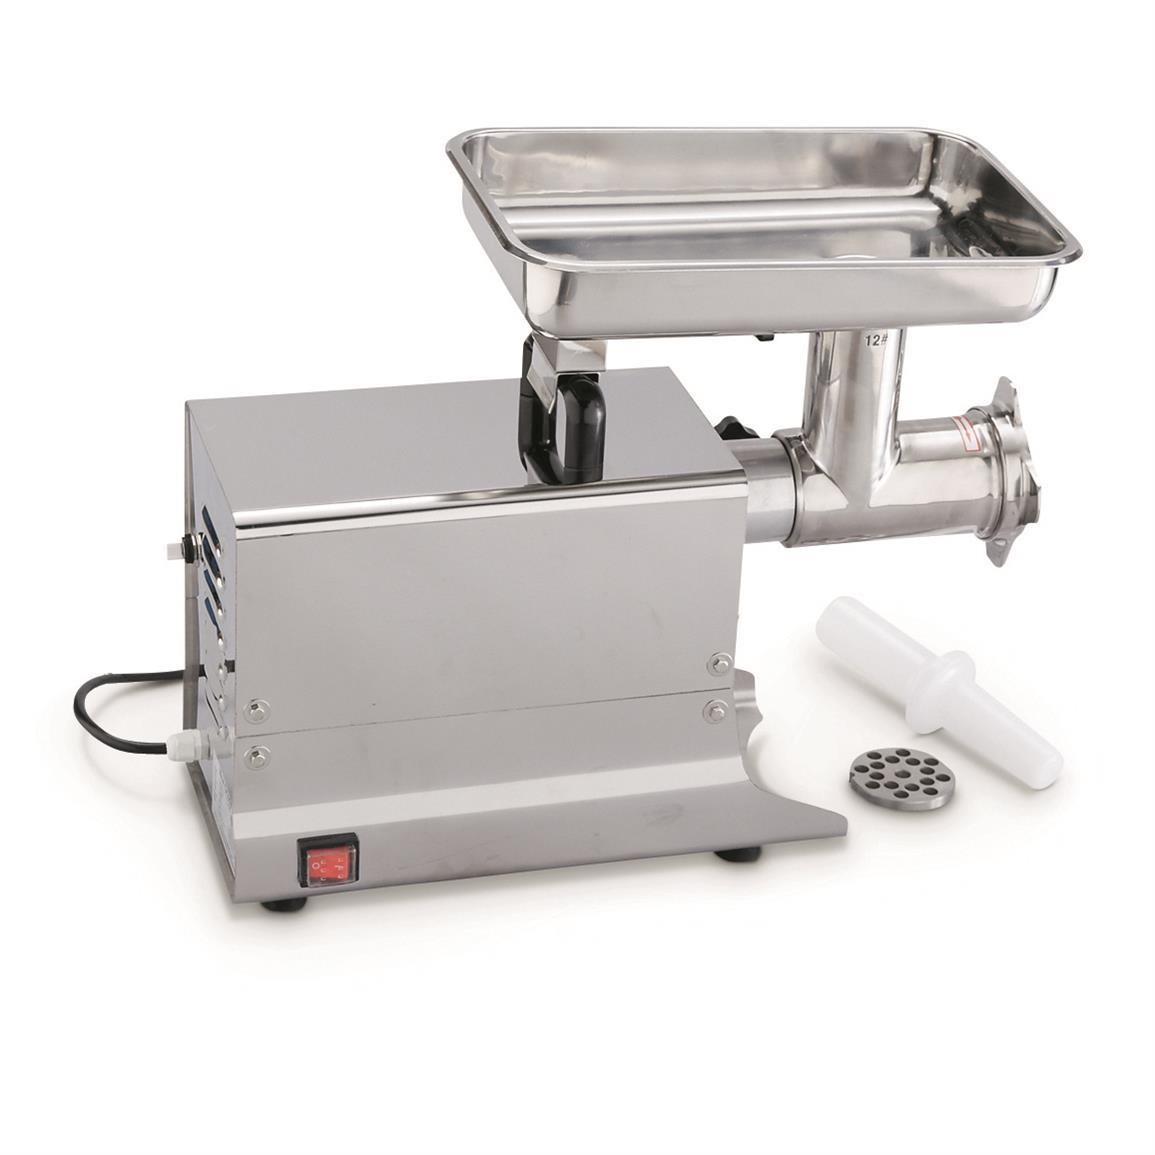 Guide Gear Pro #12 Electric Meat Grinder